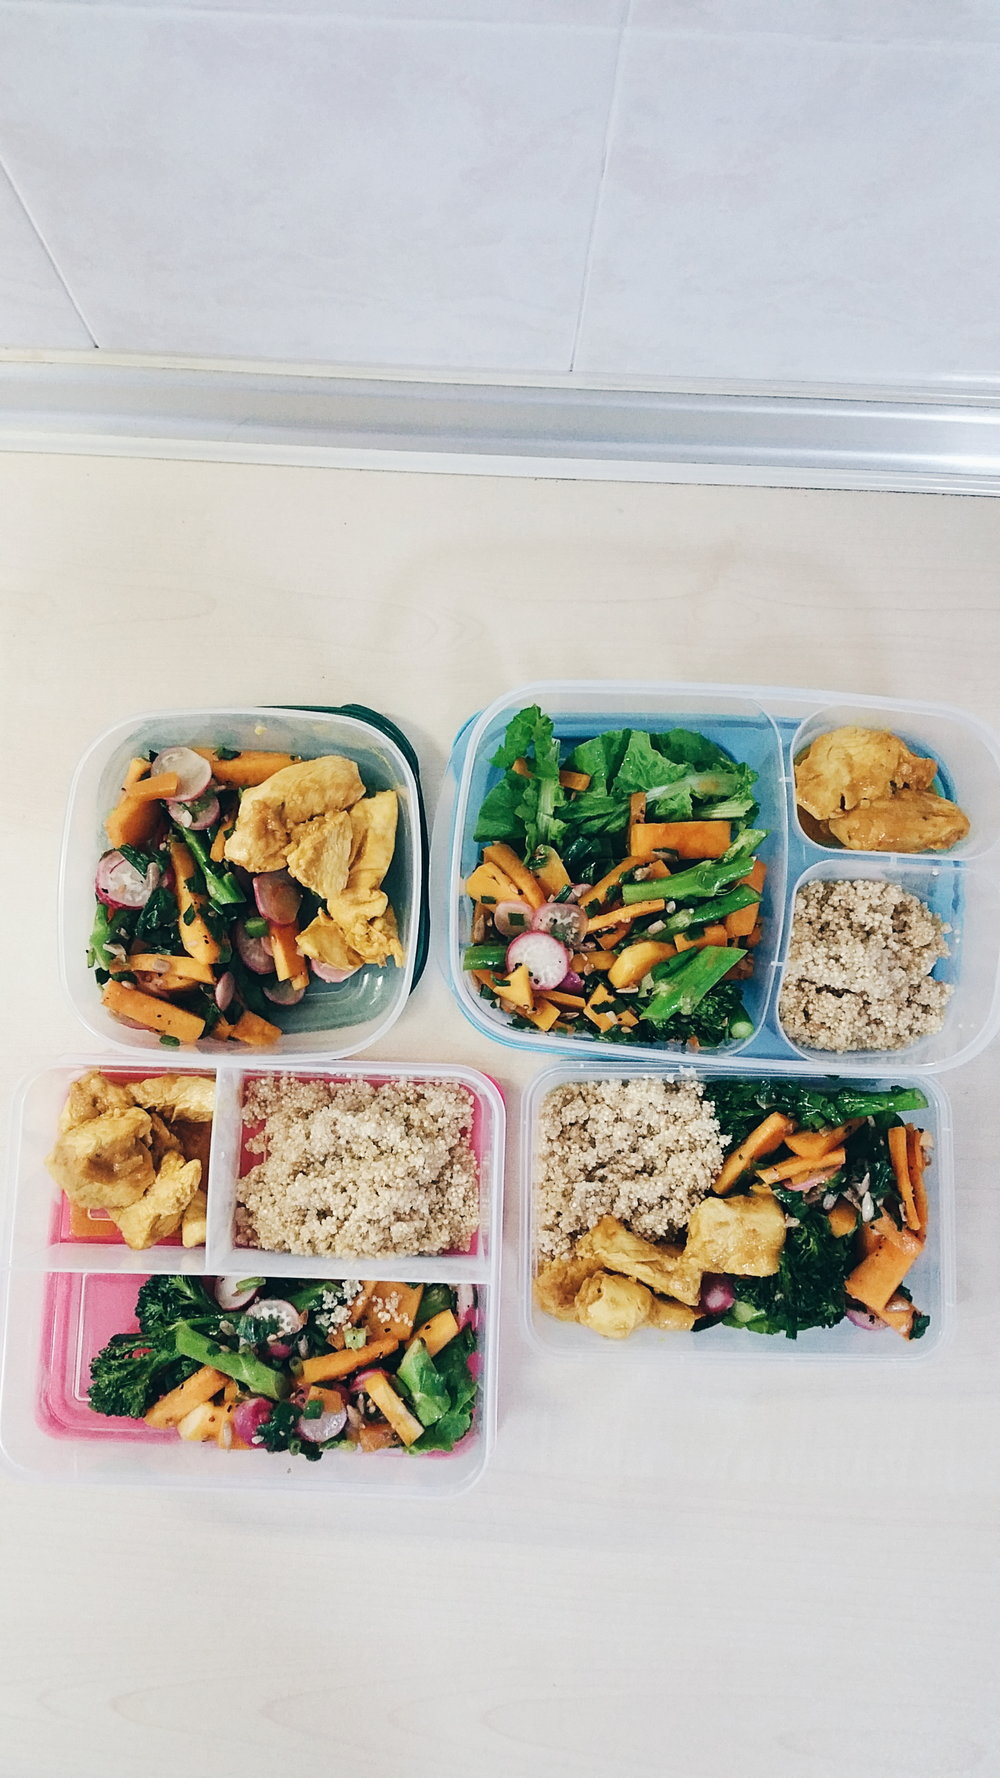 A typical representation of my meal prep on Sundays for 4 lunches a week. I include meat, an array of vegetables and some grains like quinoa in this instance.